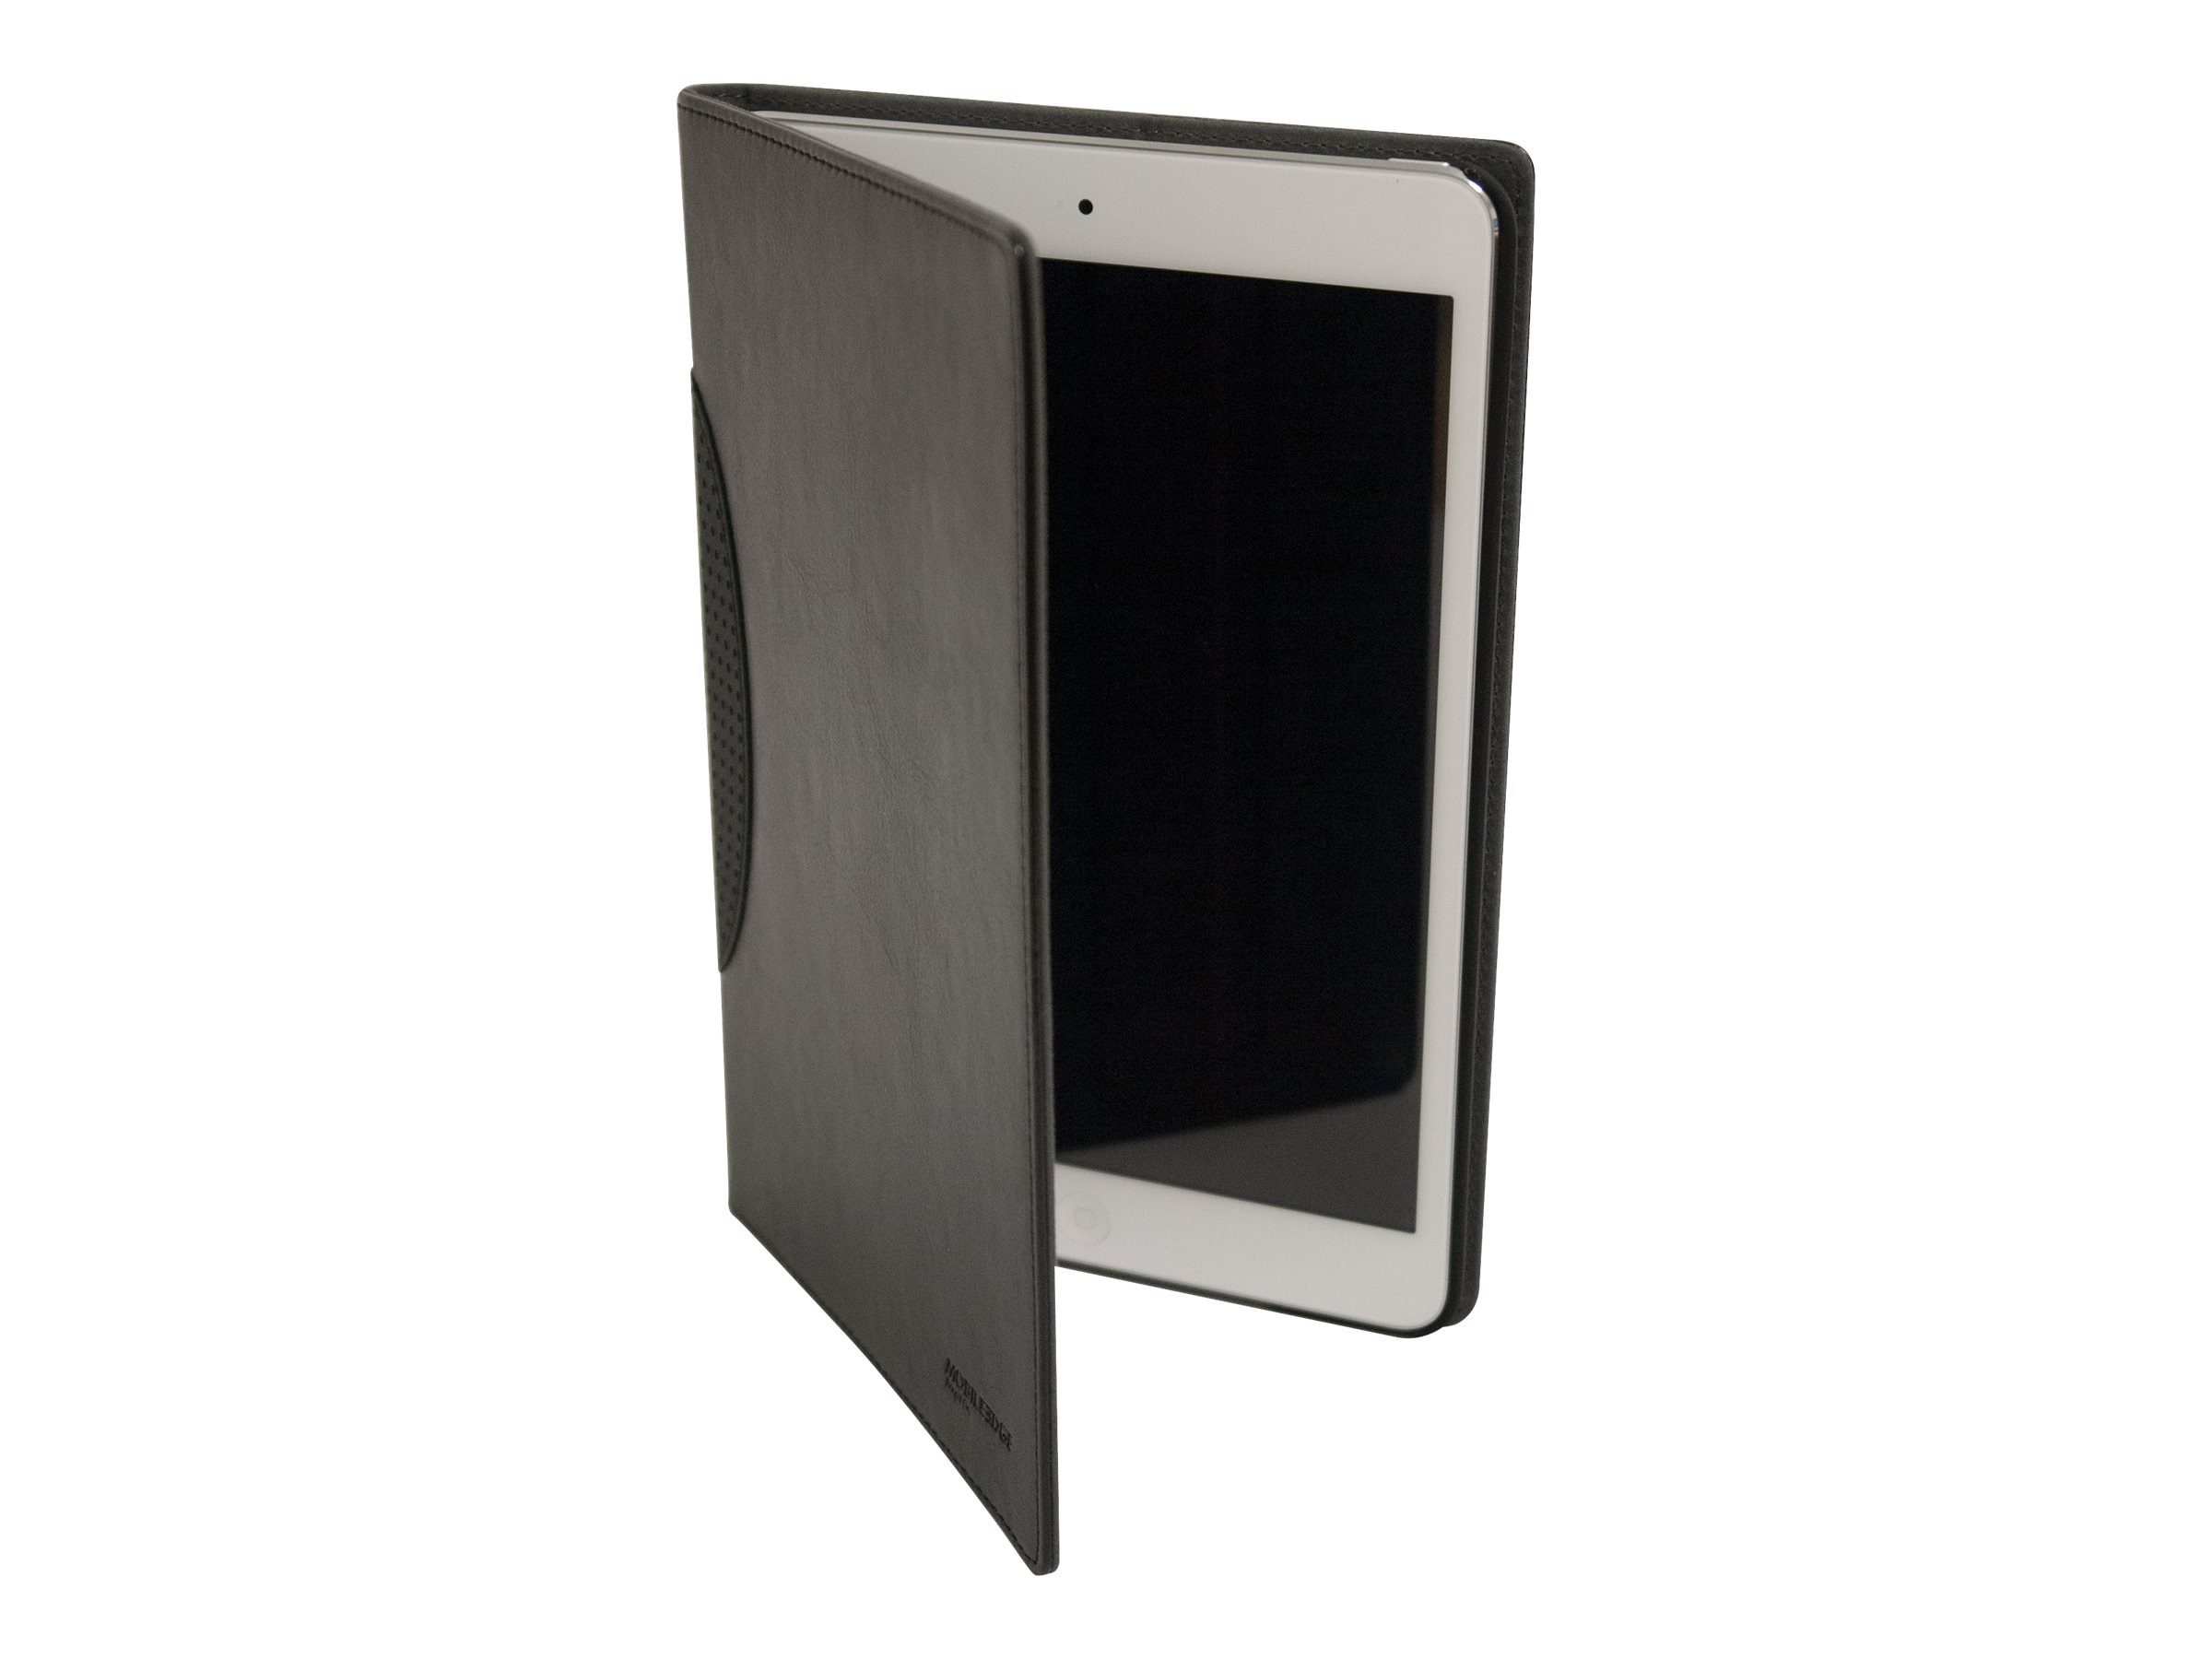 Mobile Edge Deluxe Slimfit for iPad Air